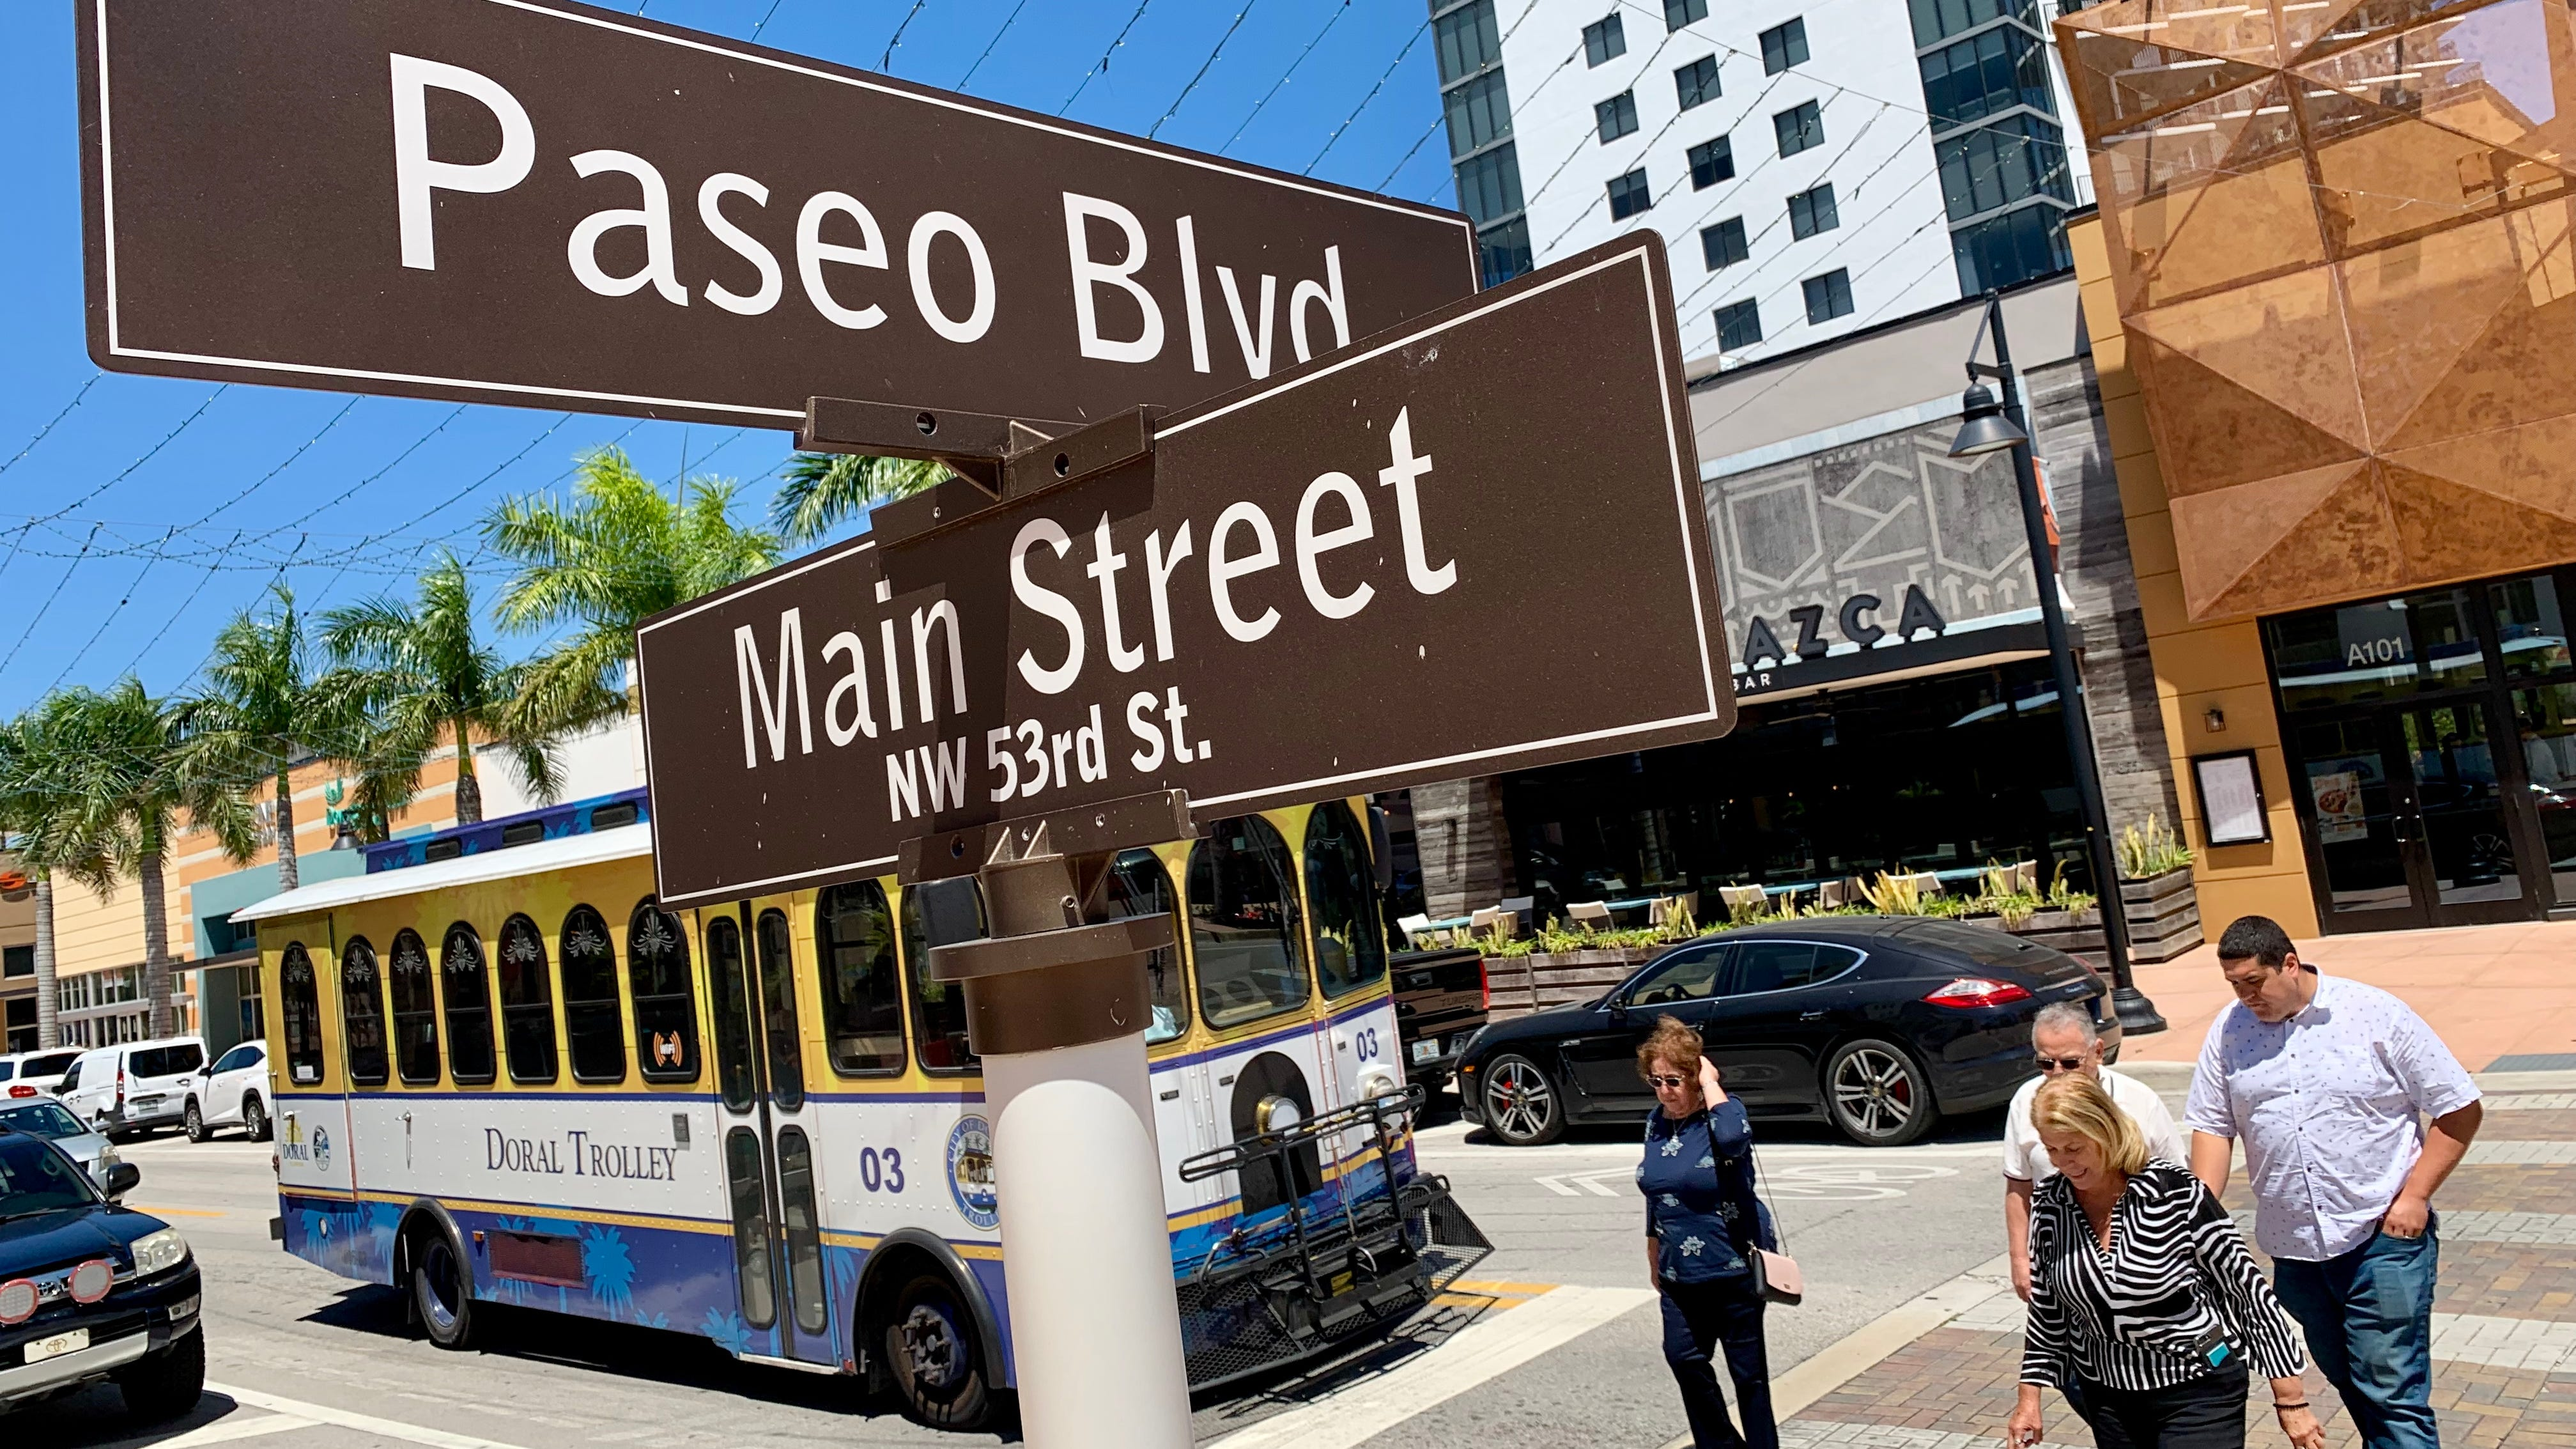 The intersection of Main Street and Paseo Blvd. in downtown Doral, Fla., a South Florida city where the percentage of foreign-born residents is amongst the highest in the nation.